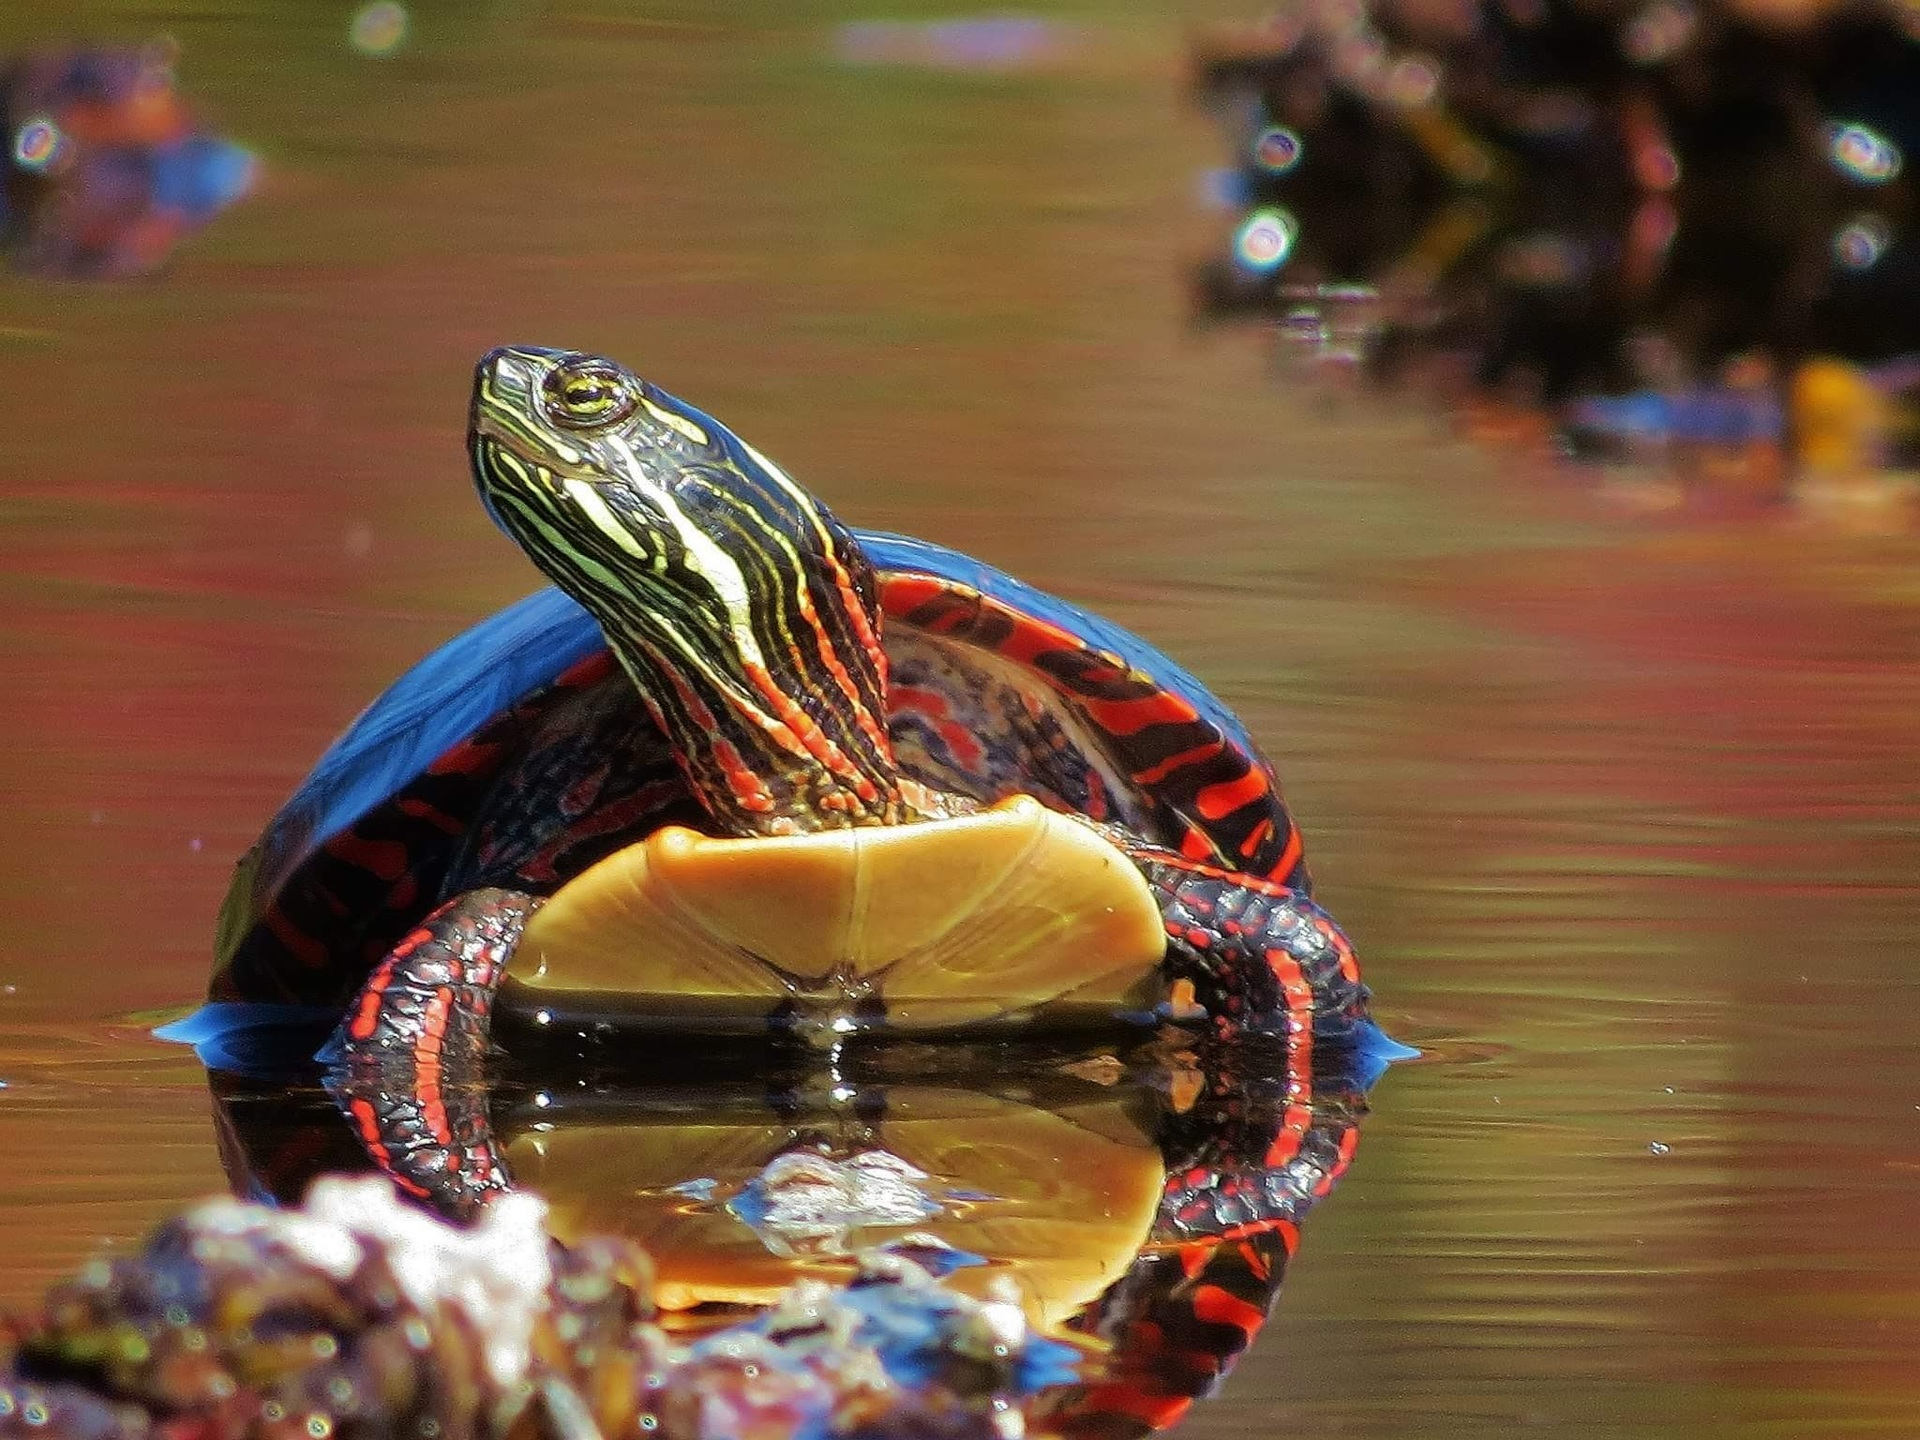 Painted Turtle chilling | julie.poster.hebda, color, outdoors, nobody